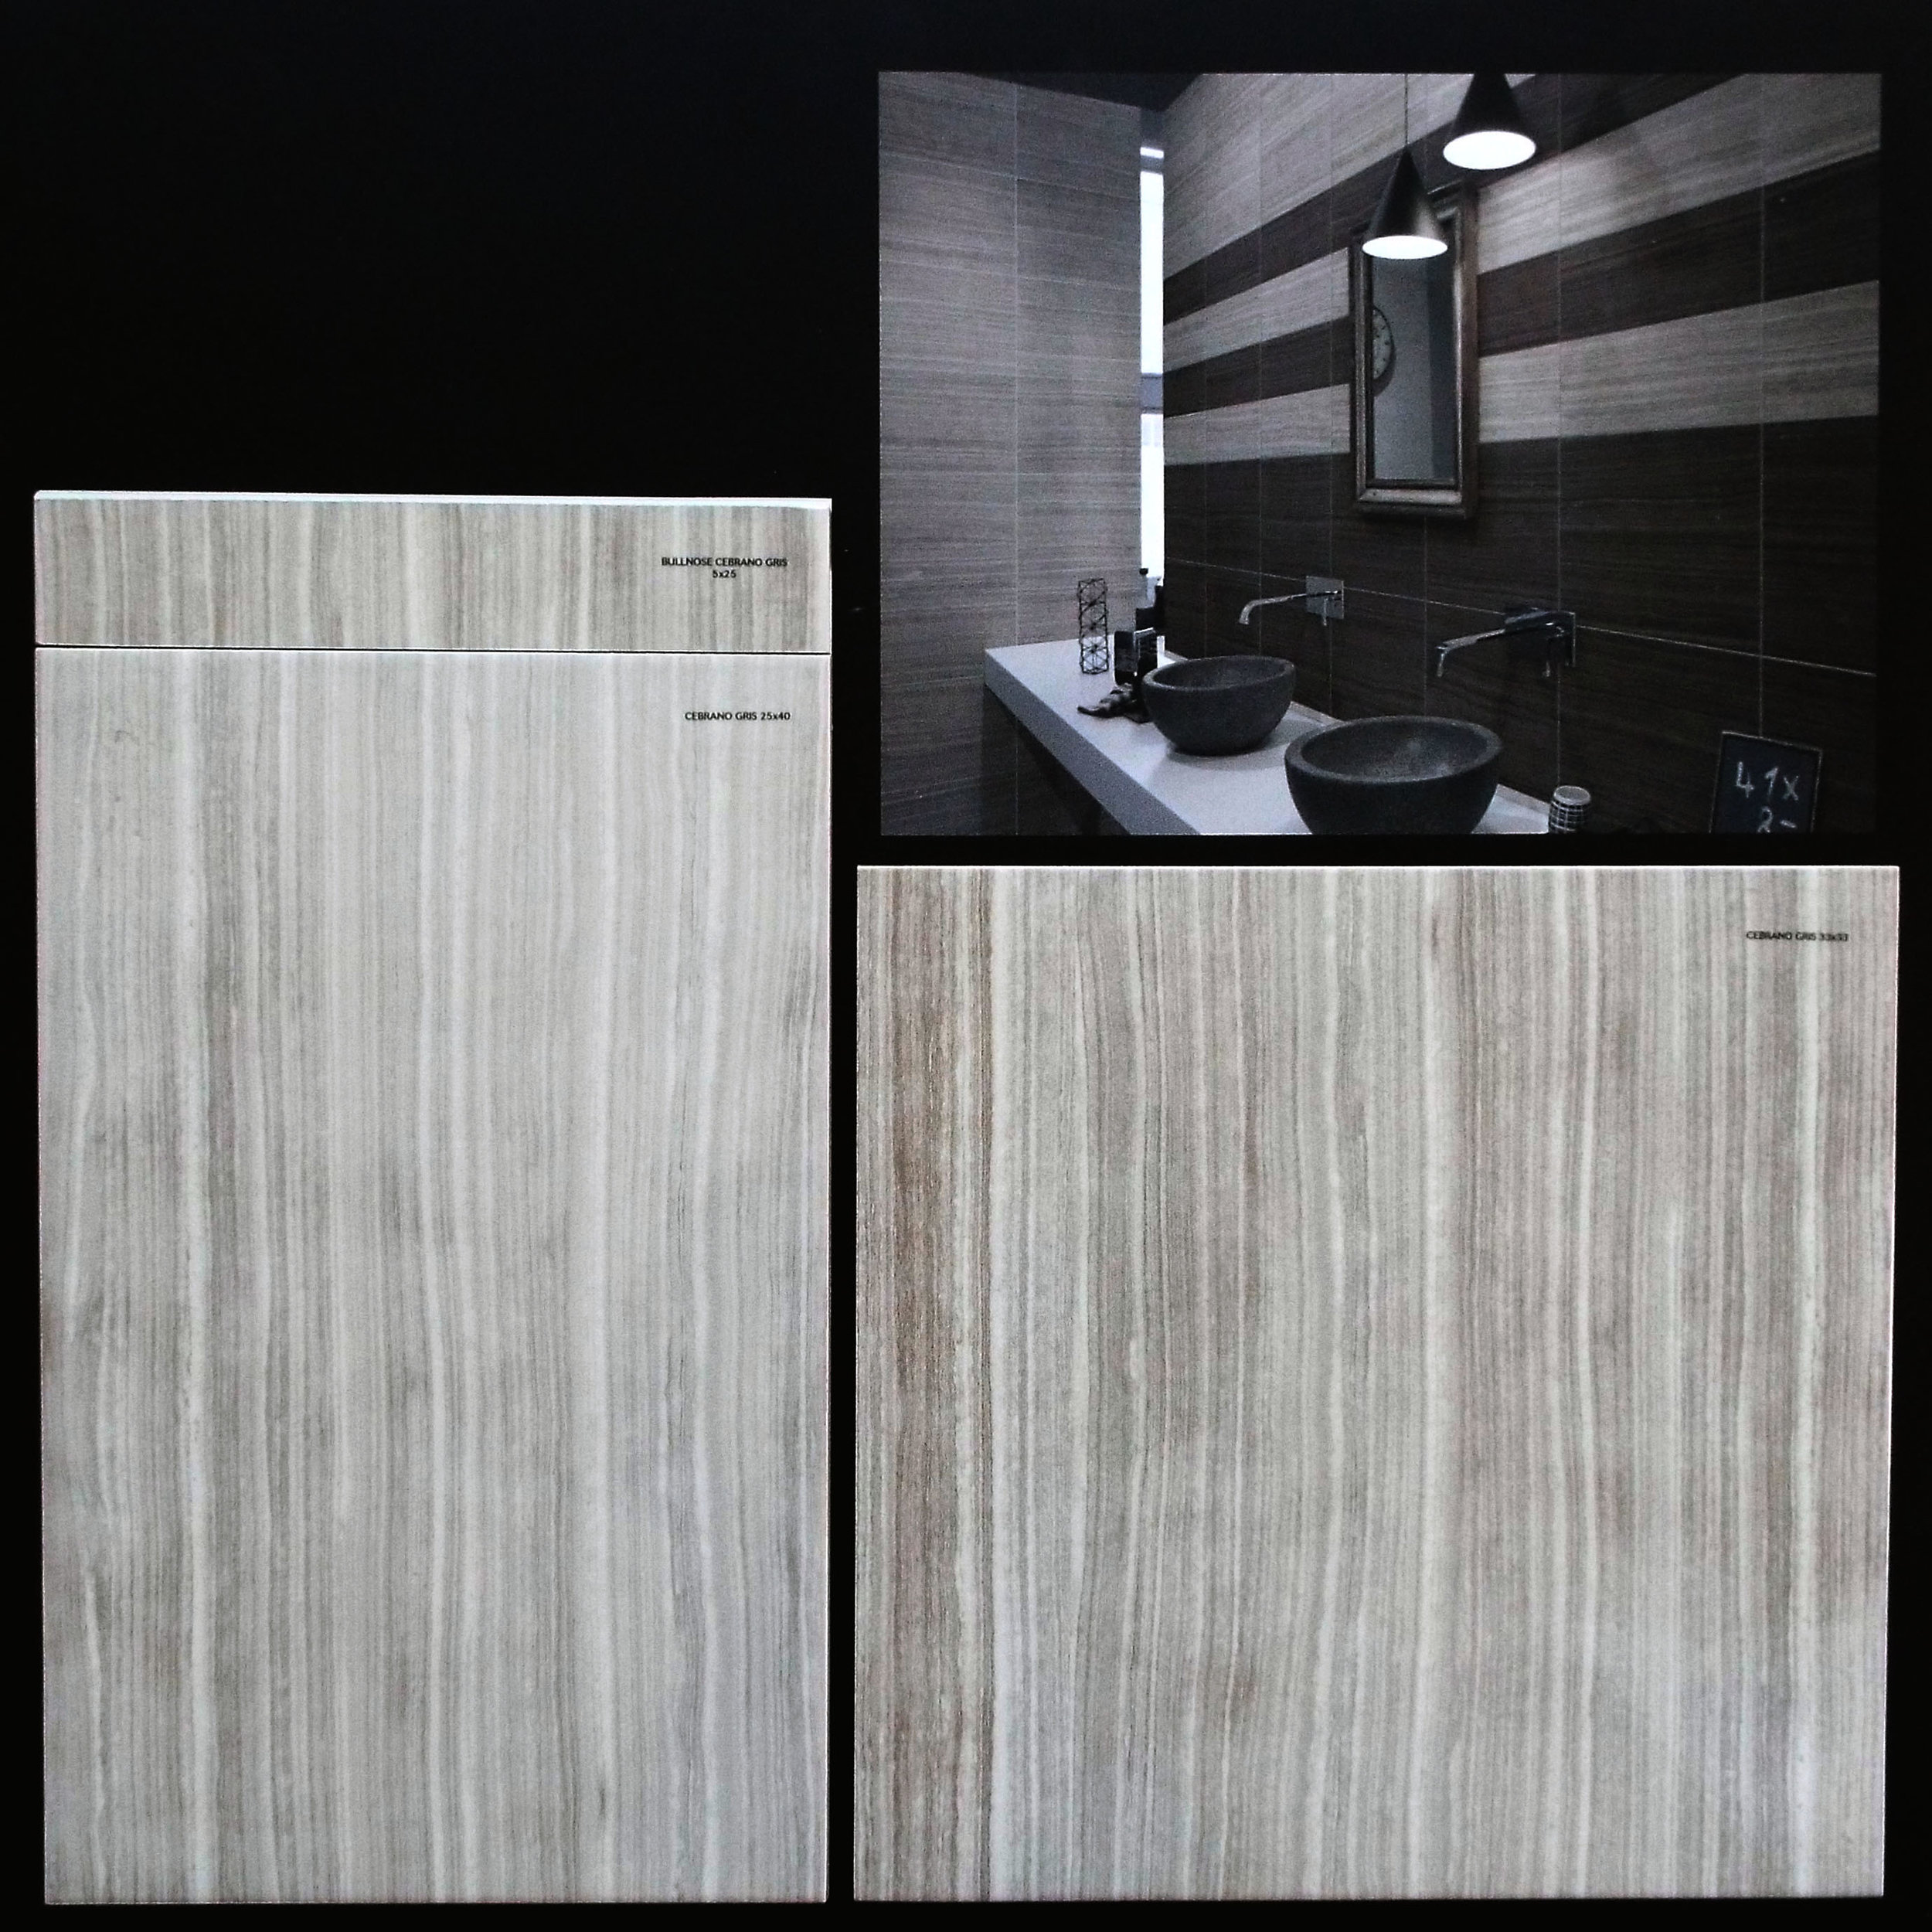 "CEBRANO GRIS  10""X16"" GLOSSY WALL - 15 PC/CTN (16.15 SF); 64CTN/PLT  13""X13"" FLOOR GLOSSY - 14 PC/CNT(16.68 SF); 44CTN/PLT  3""X10"" BULLNOSE AVAILABLE - 44 PC/CTN"